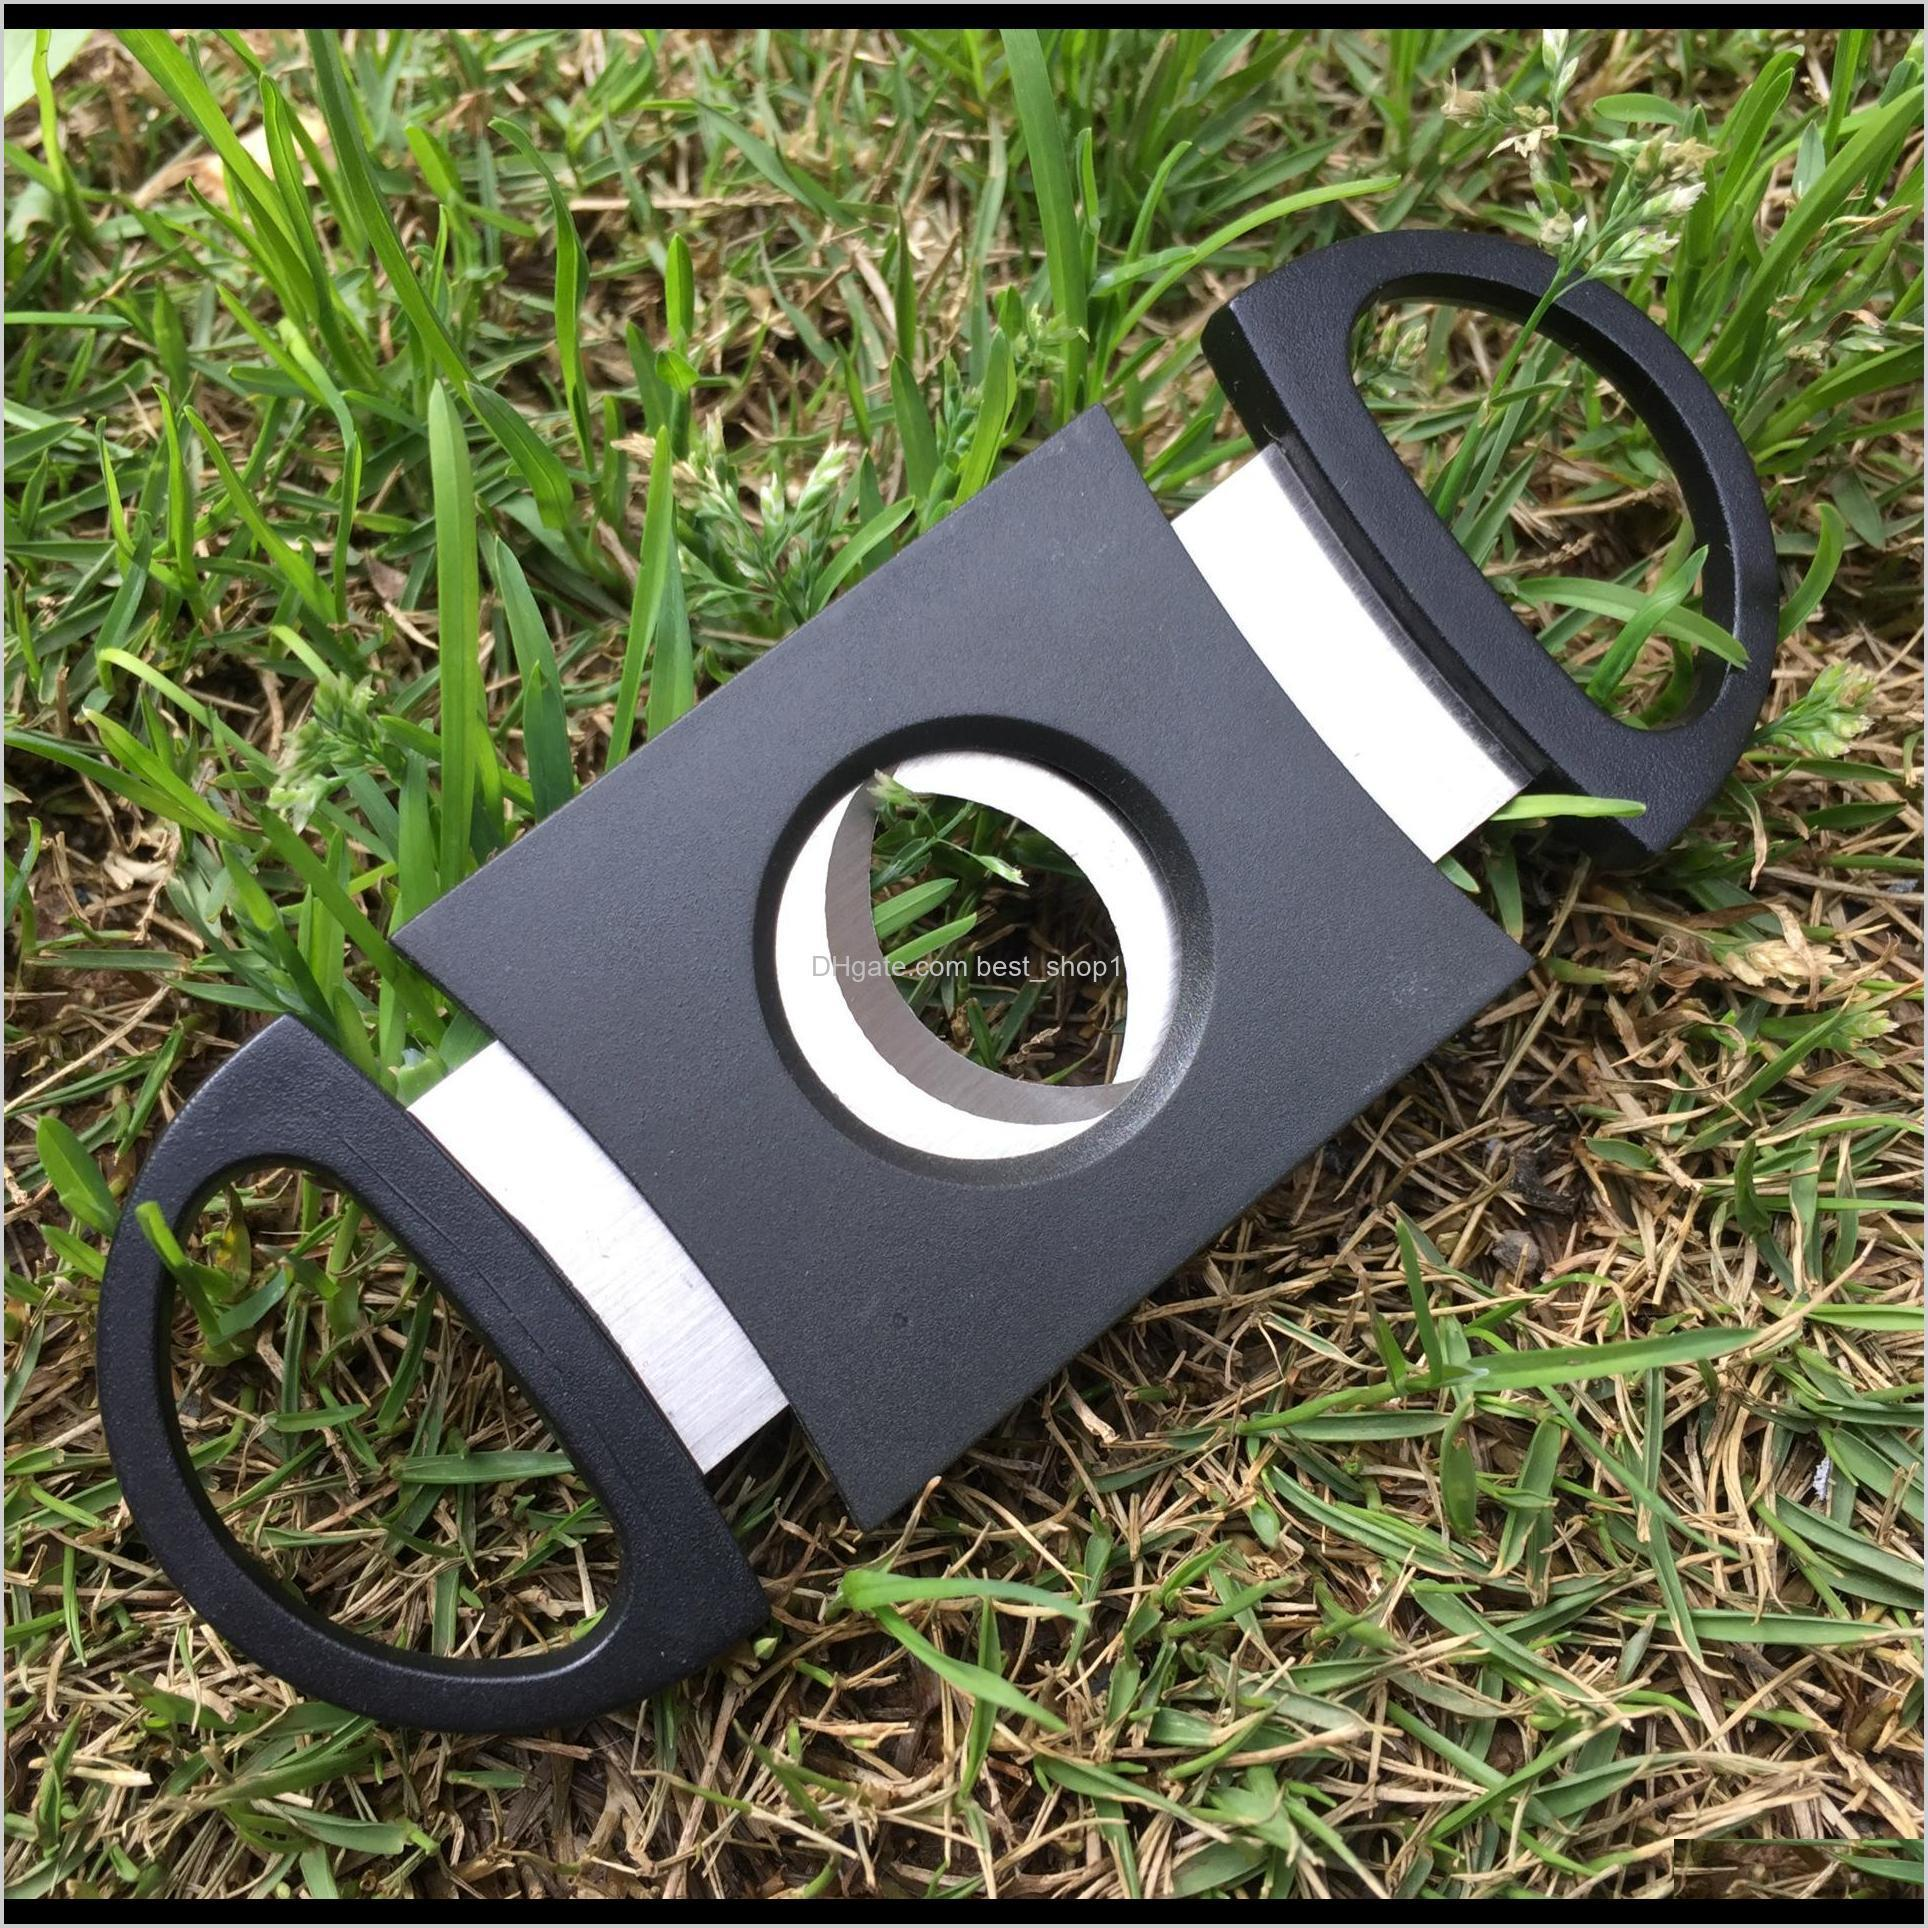 wholesale portable black plated double blades cigar sharp cutter 9*4cm mini pocket gadgets stainless steel cigars knife dh0578 t03